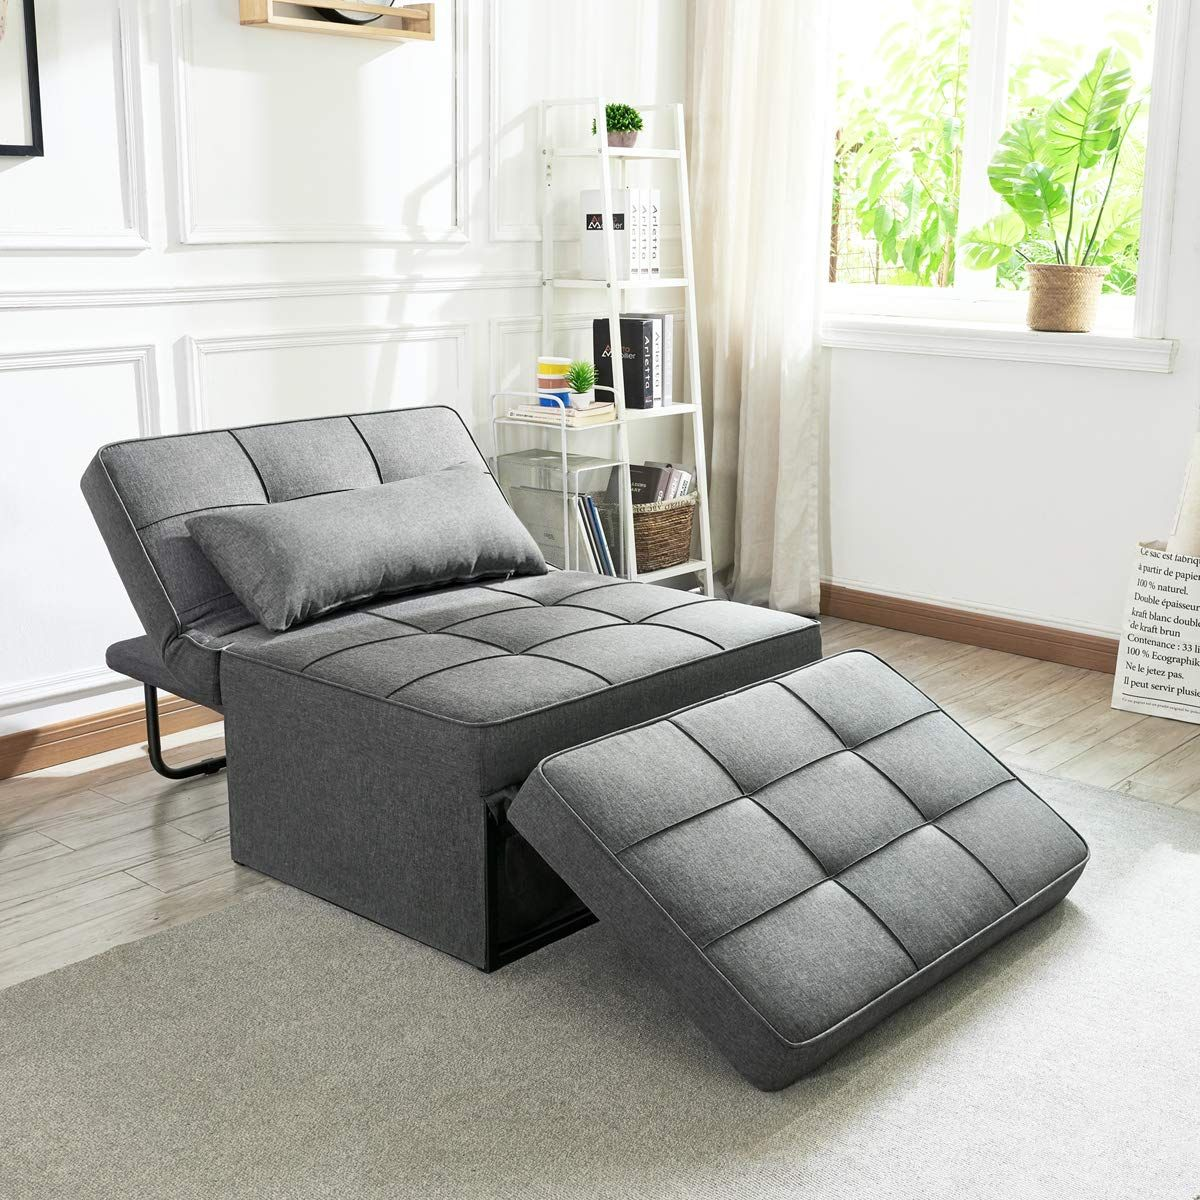 Single Sofa Bed Single sofa bed, Single sofa, Sofa bed